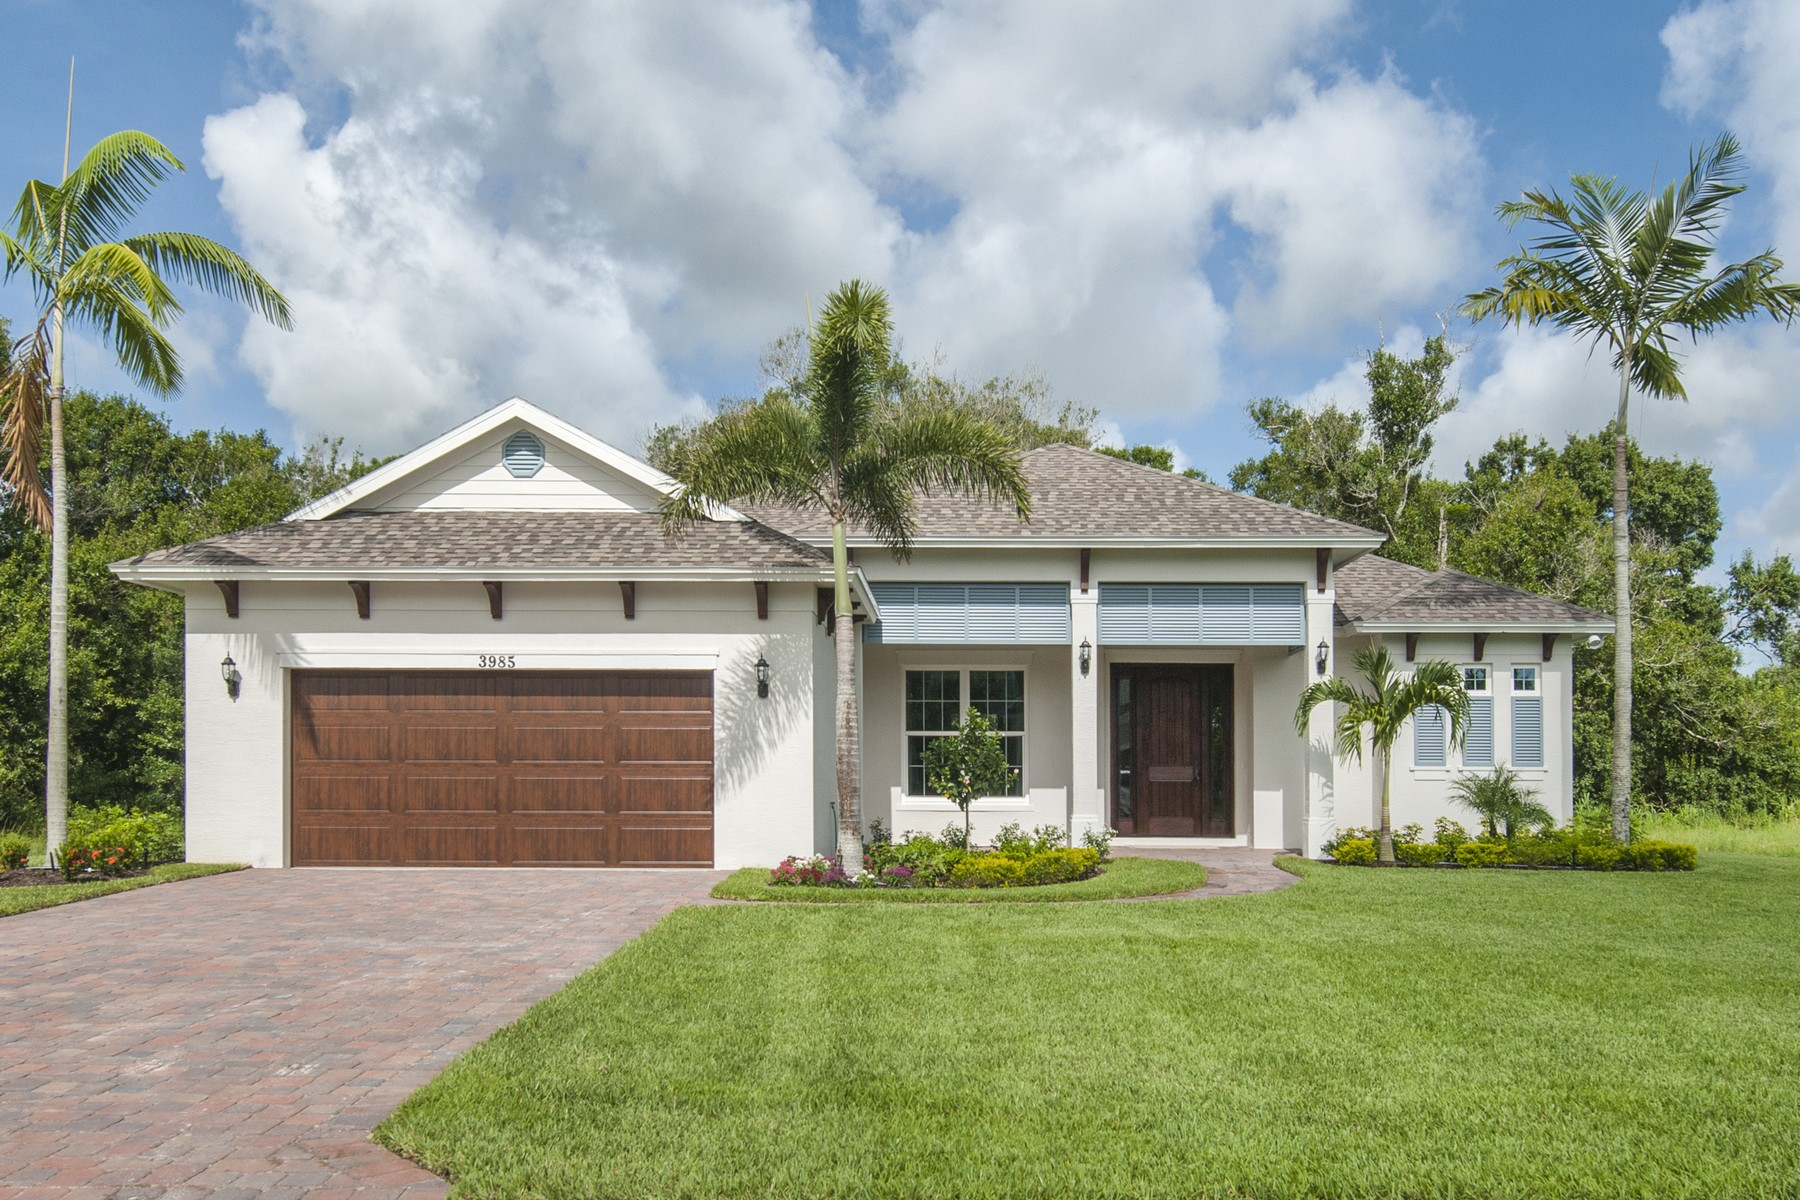 House for Sale at Brand New Construction 3985 Oak Hollow Avenue Vero Beach, Florida 32966 United States